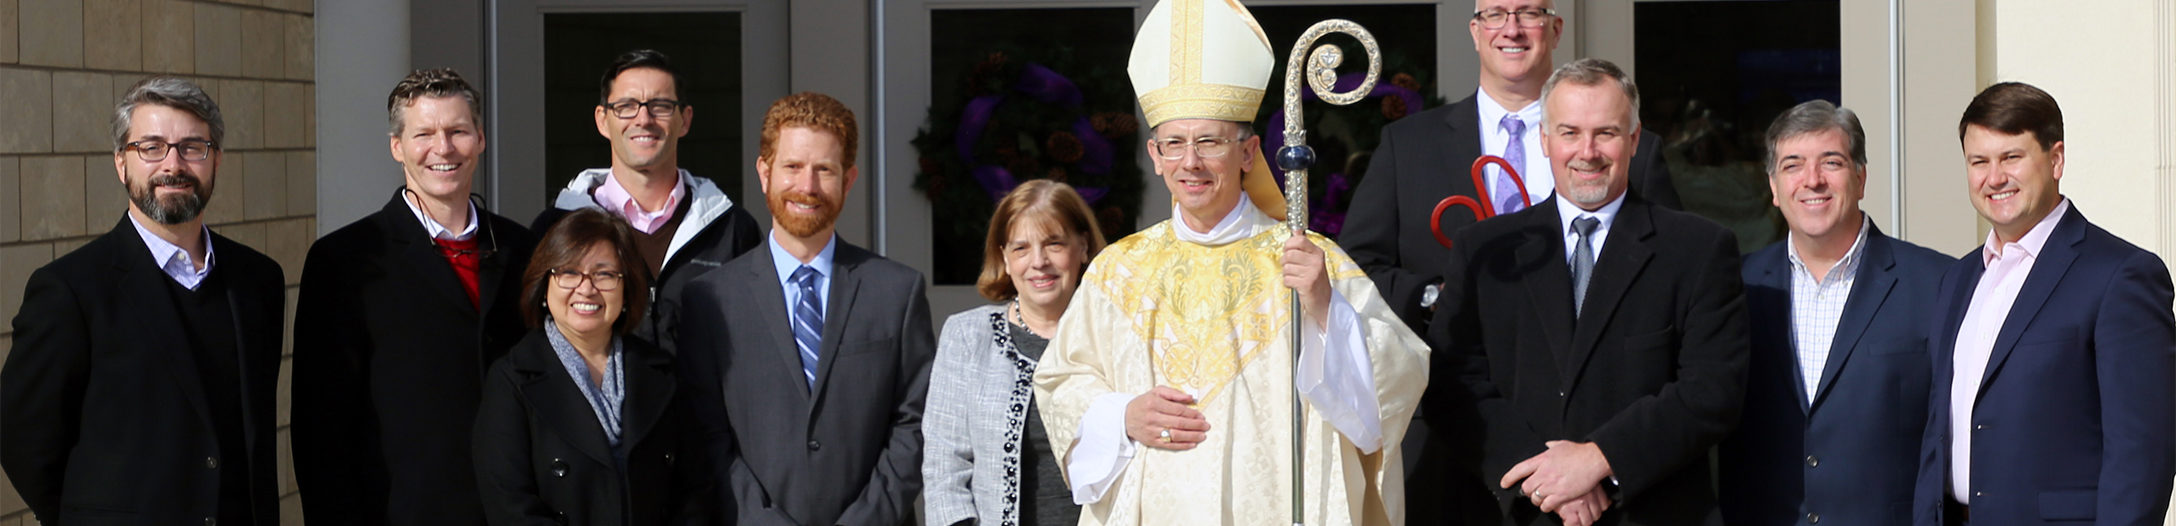 Bishop Jugis Blessed Christ the King High School's New Addition